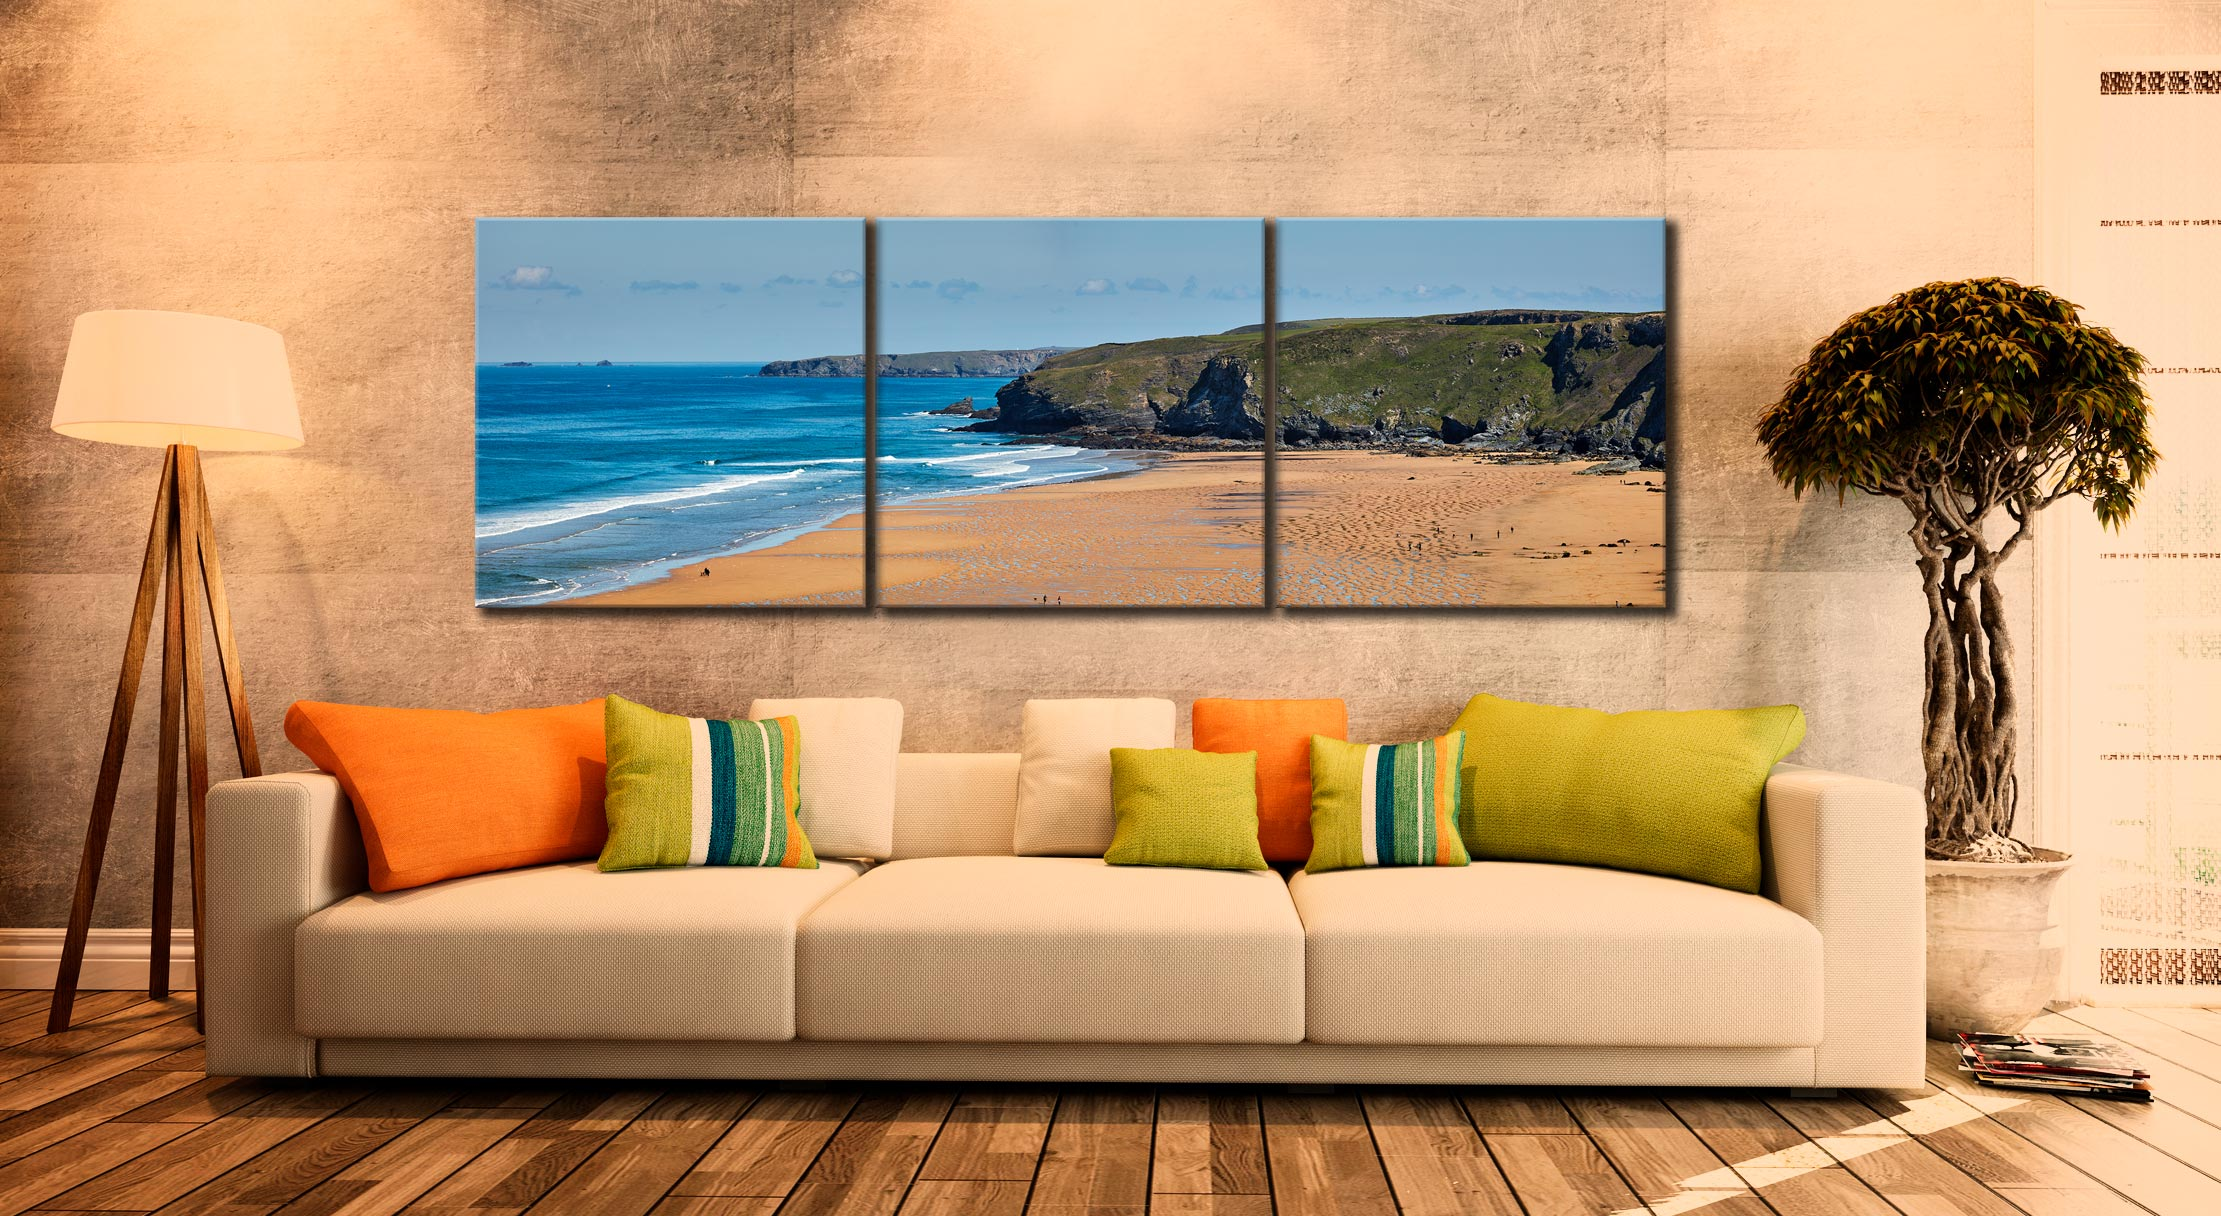 Watergate Bay Panorama - 3 Panel Canvas on Wall